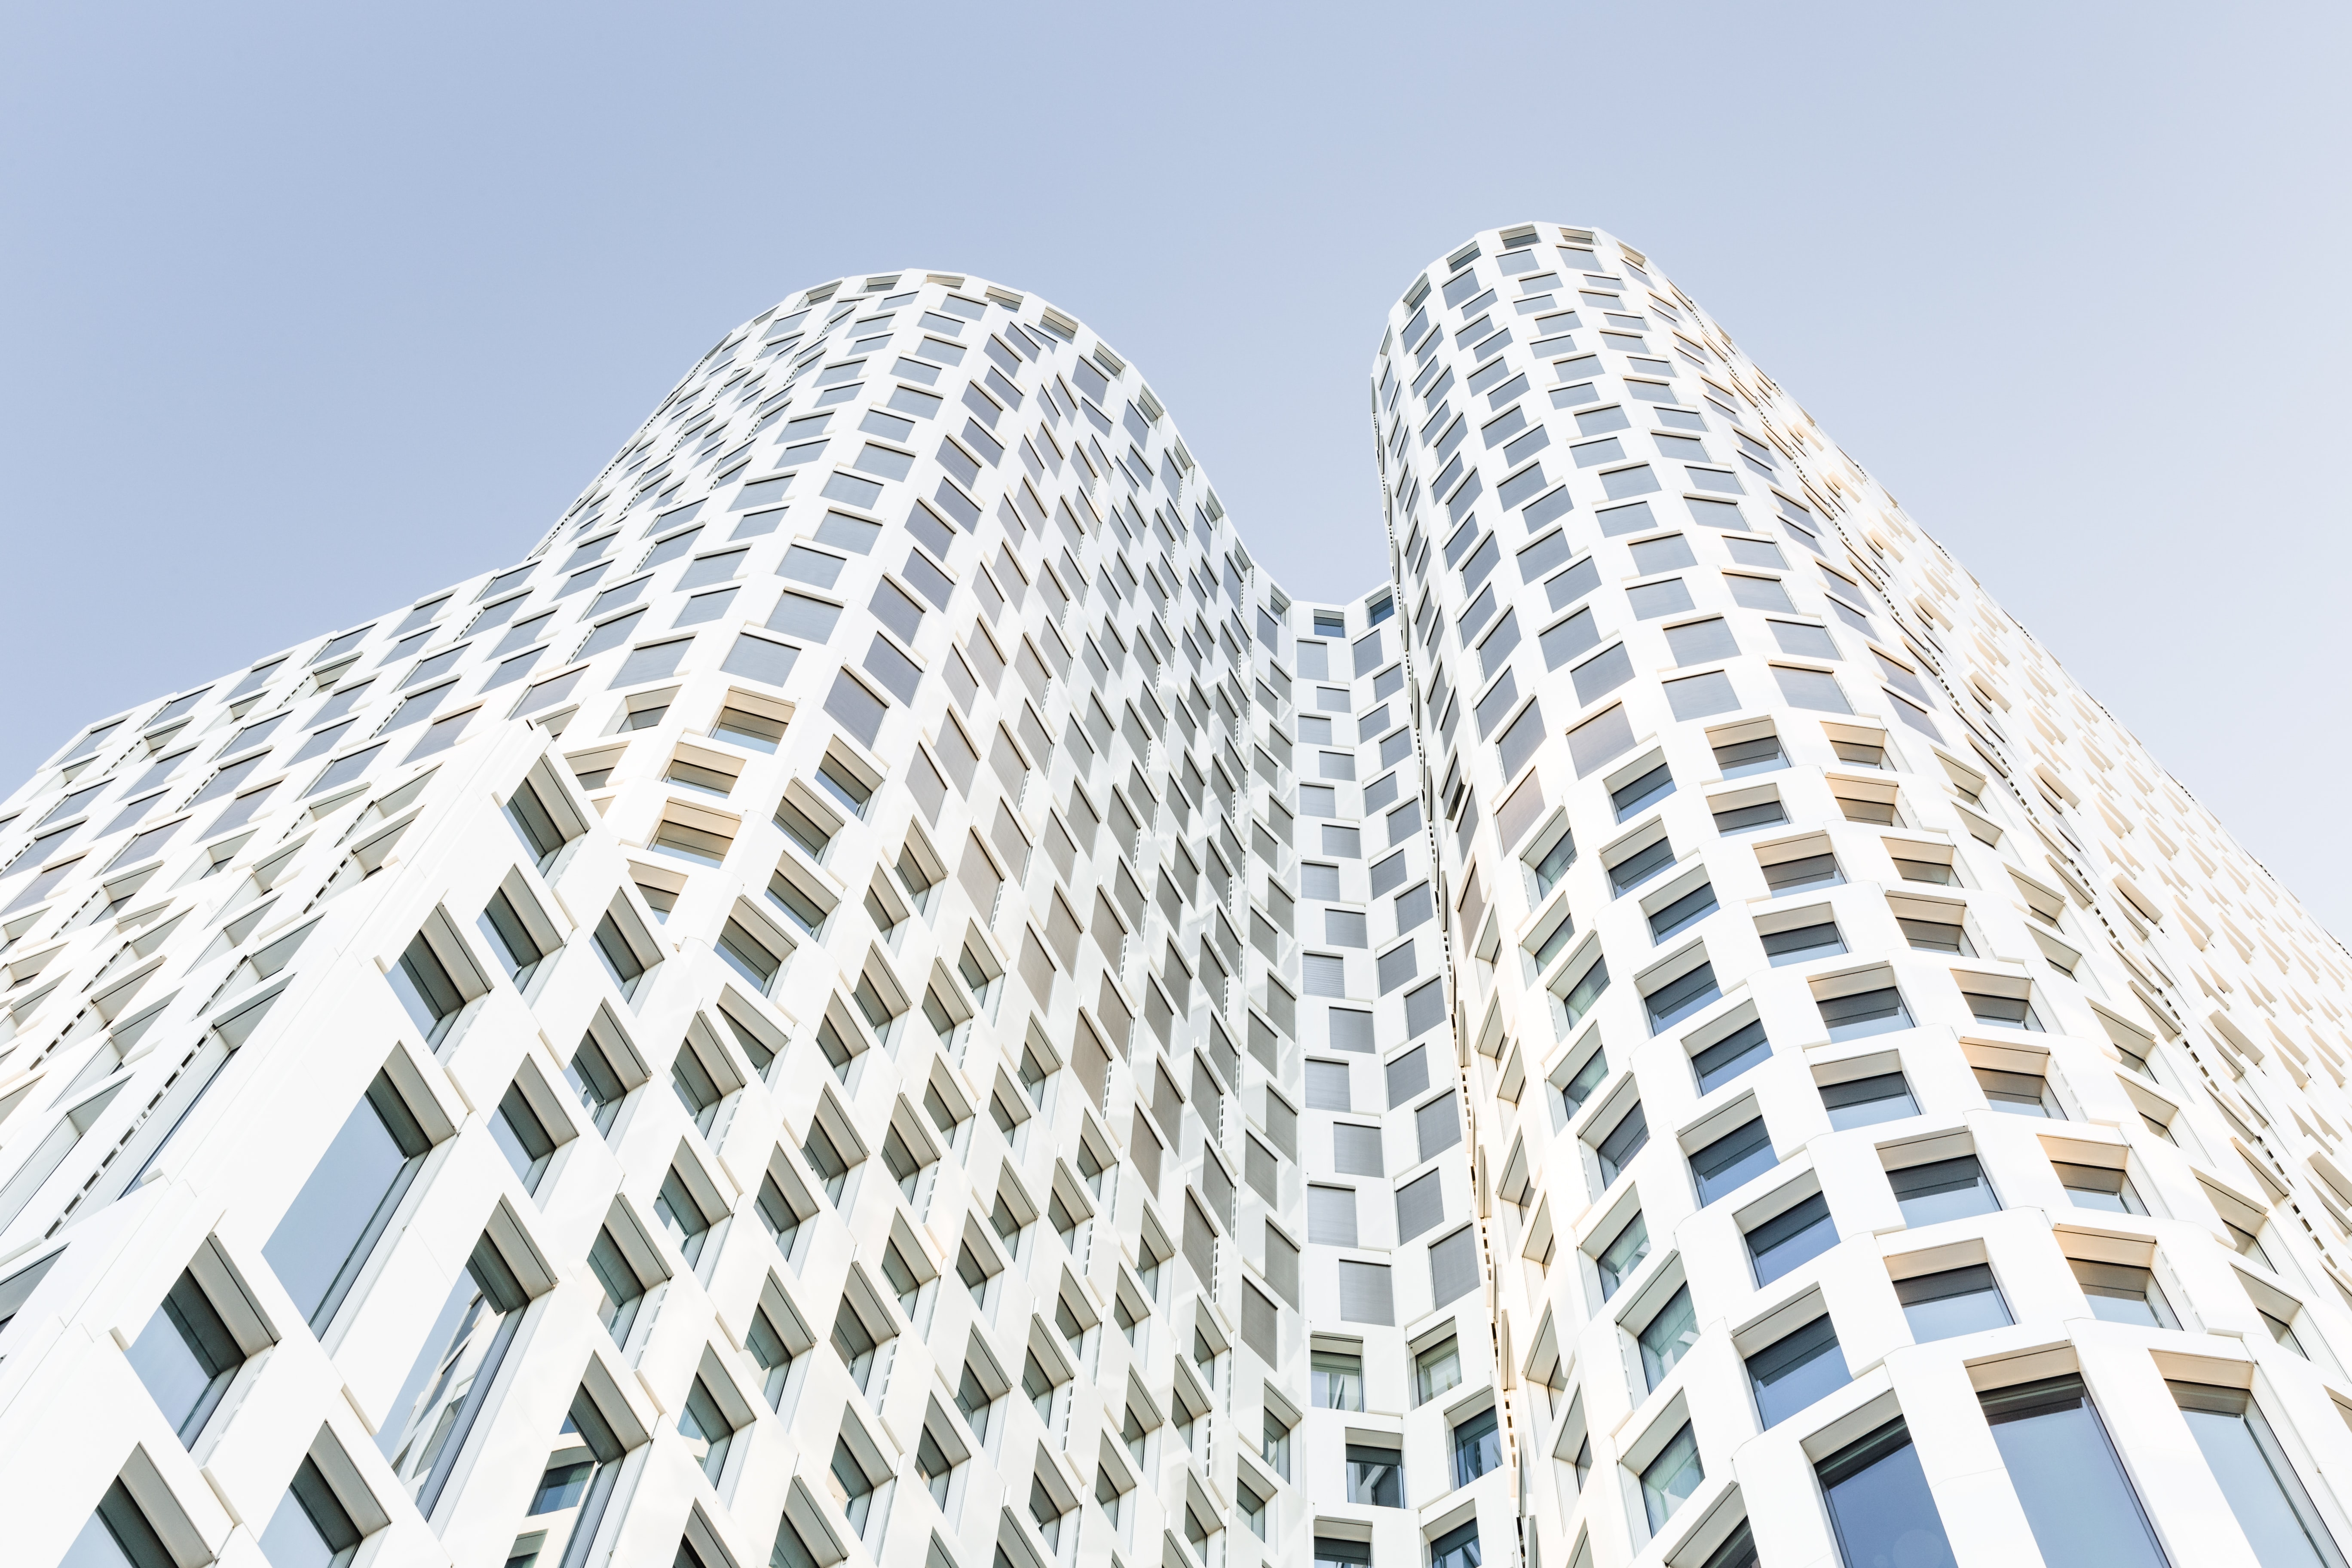 worm's-eye view of white building